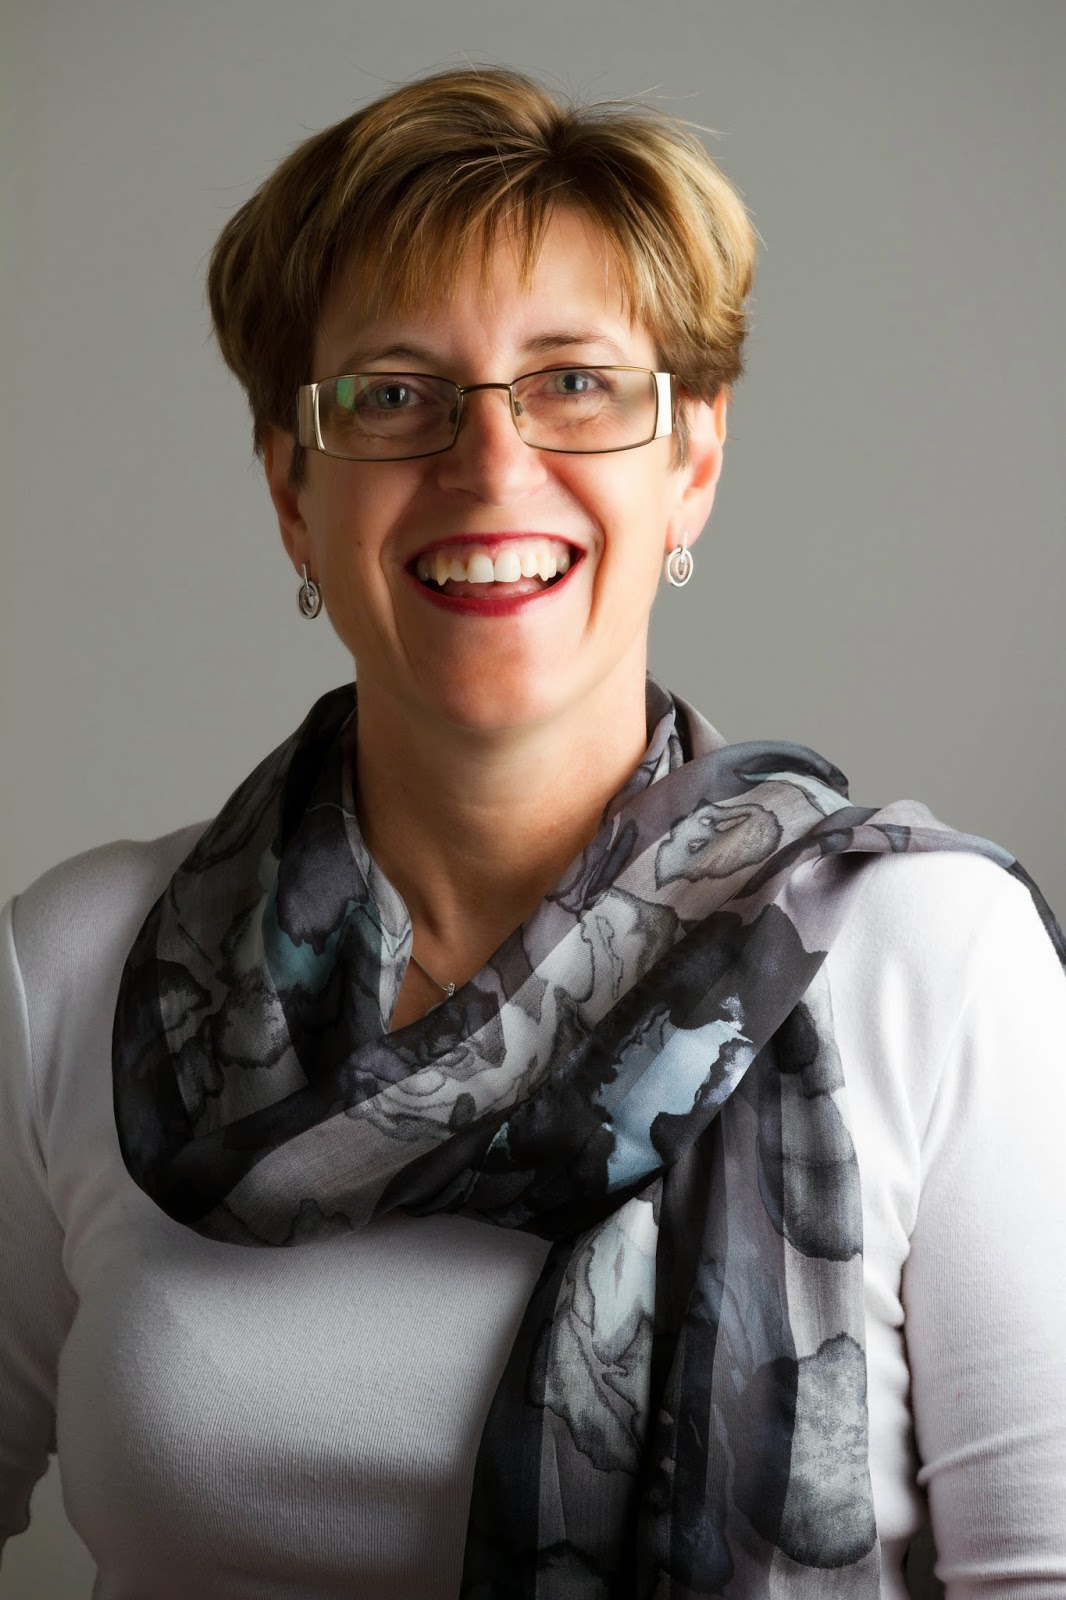 Author photo Christine McPaul